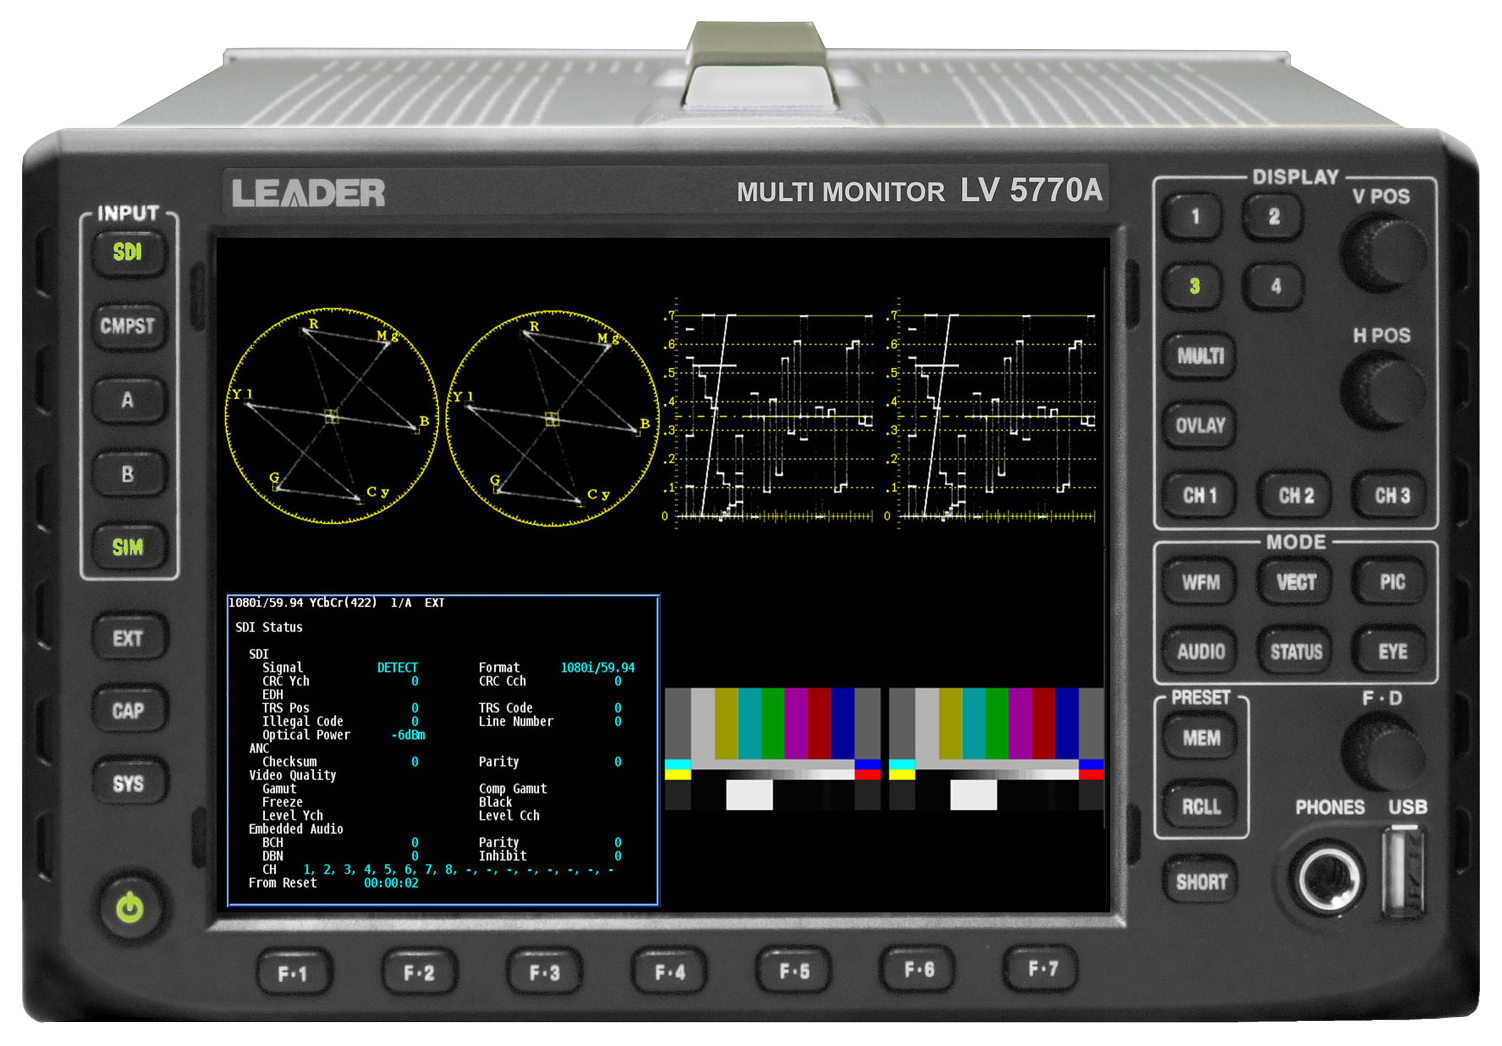 LEADER  LV5770A 3G/HD/SD-SDI WAVEFORM MONITOR  - Image #1